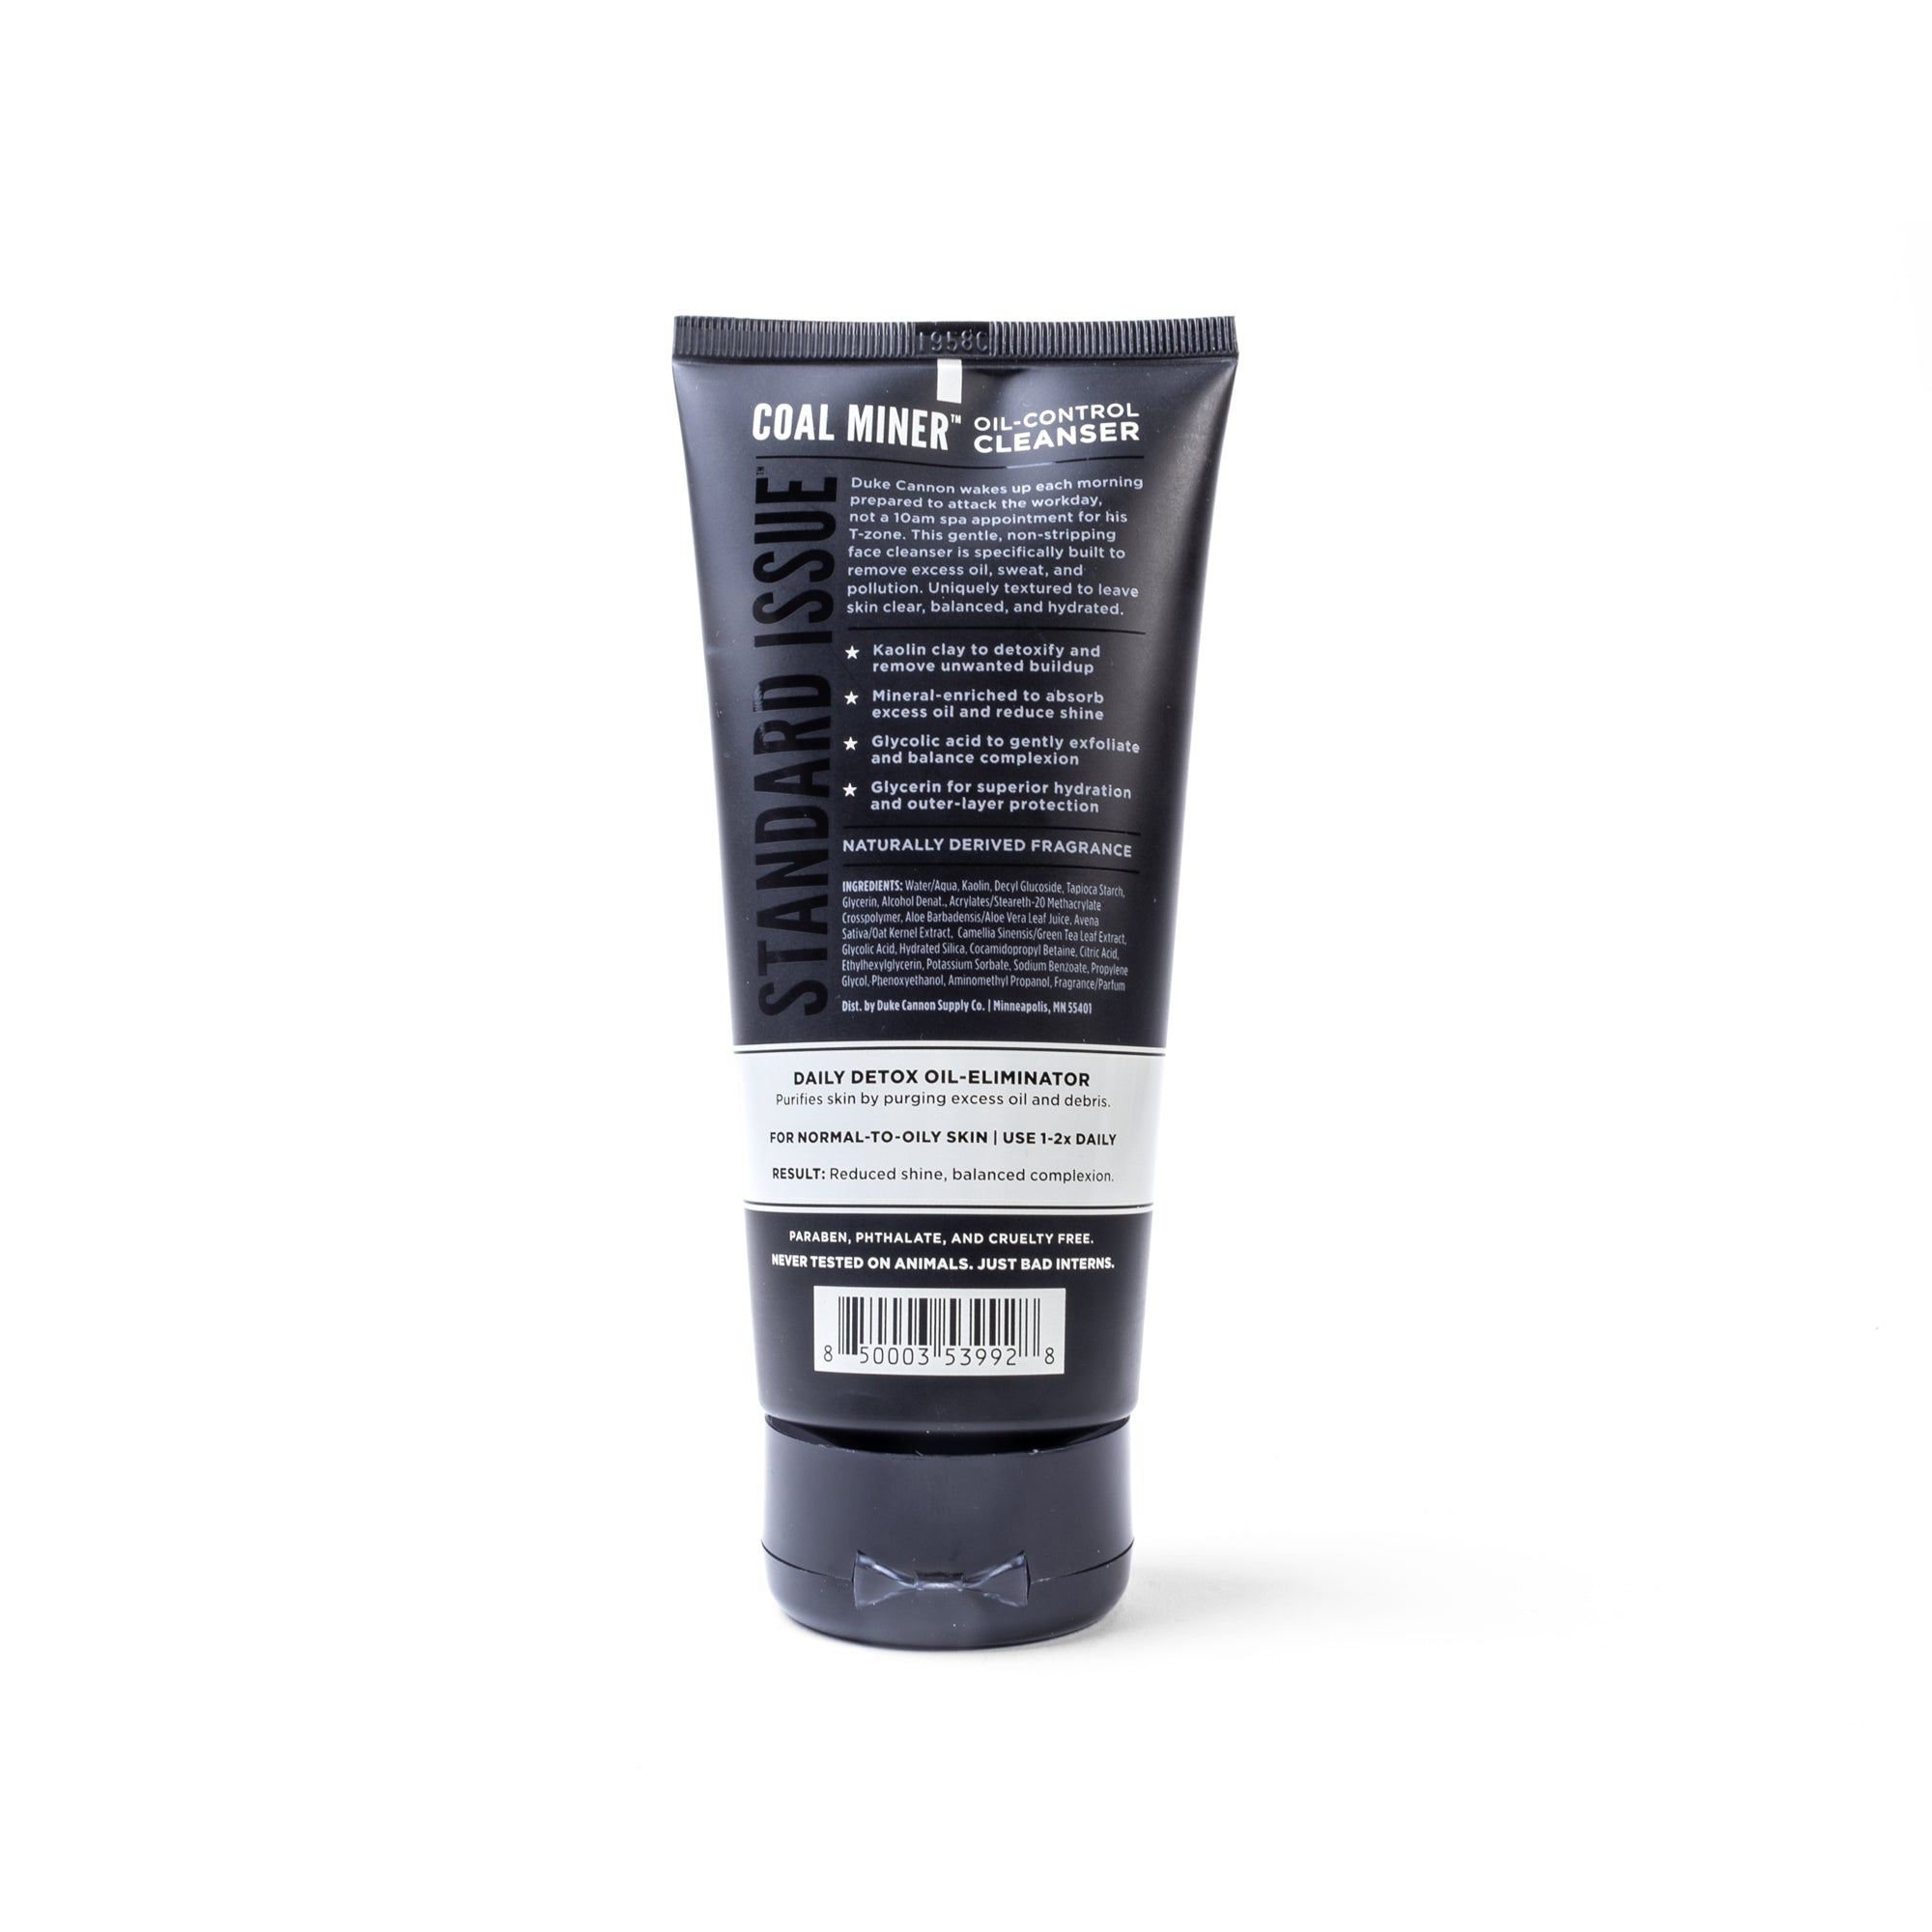 COAL MINER Oil Control Face Cleanser - Duke Cannon